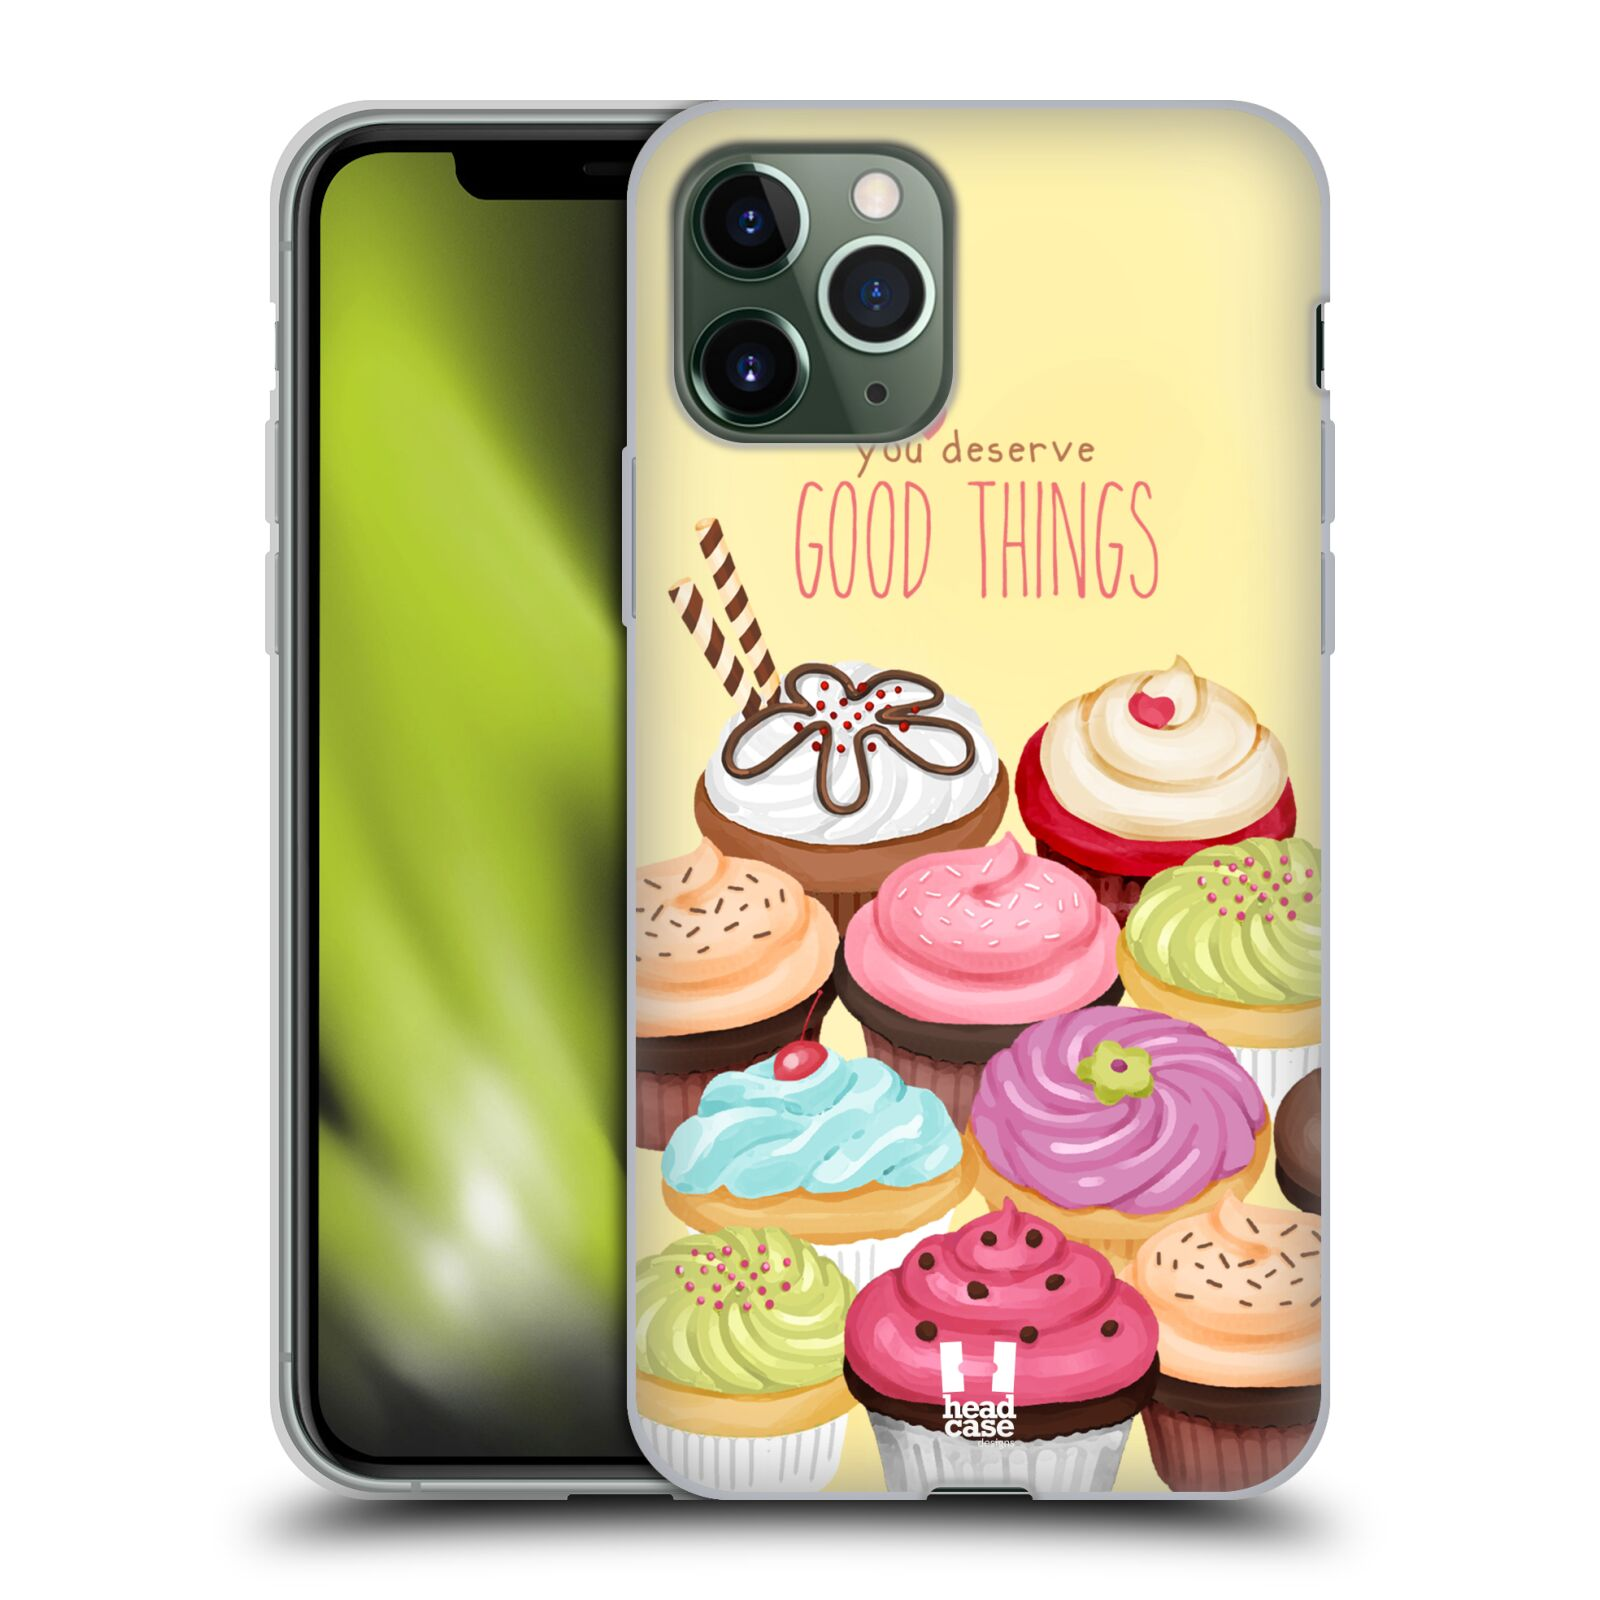 pouzdro iphone 7 bmw - Silikonové pouzdro na mobil Apple iPhone 11 Pro - Head Case - CUPCAKE GOOD THINGS